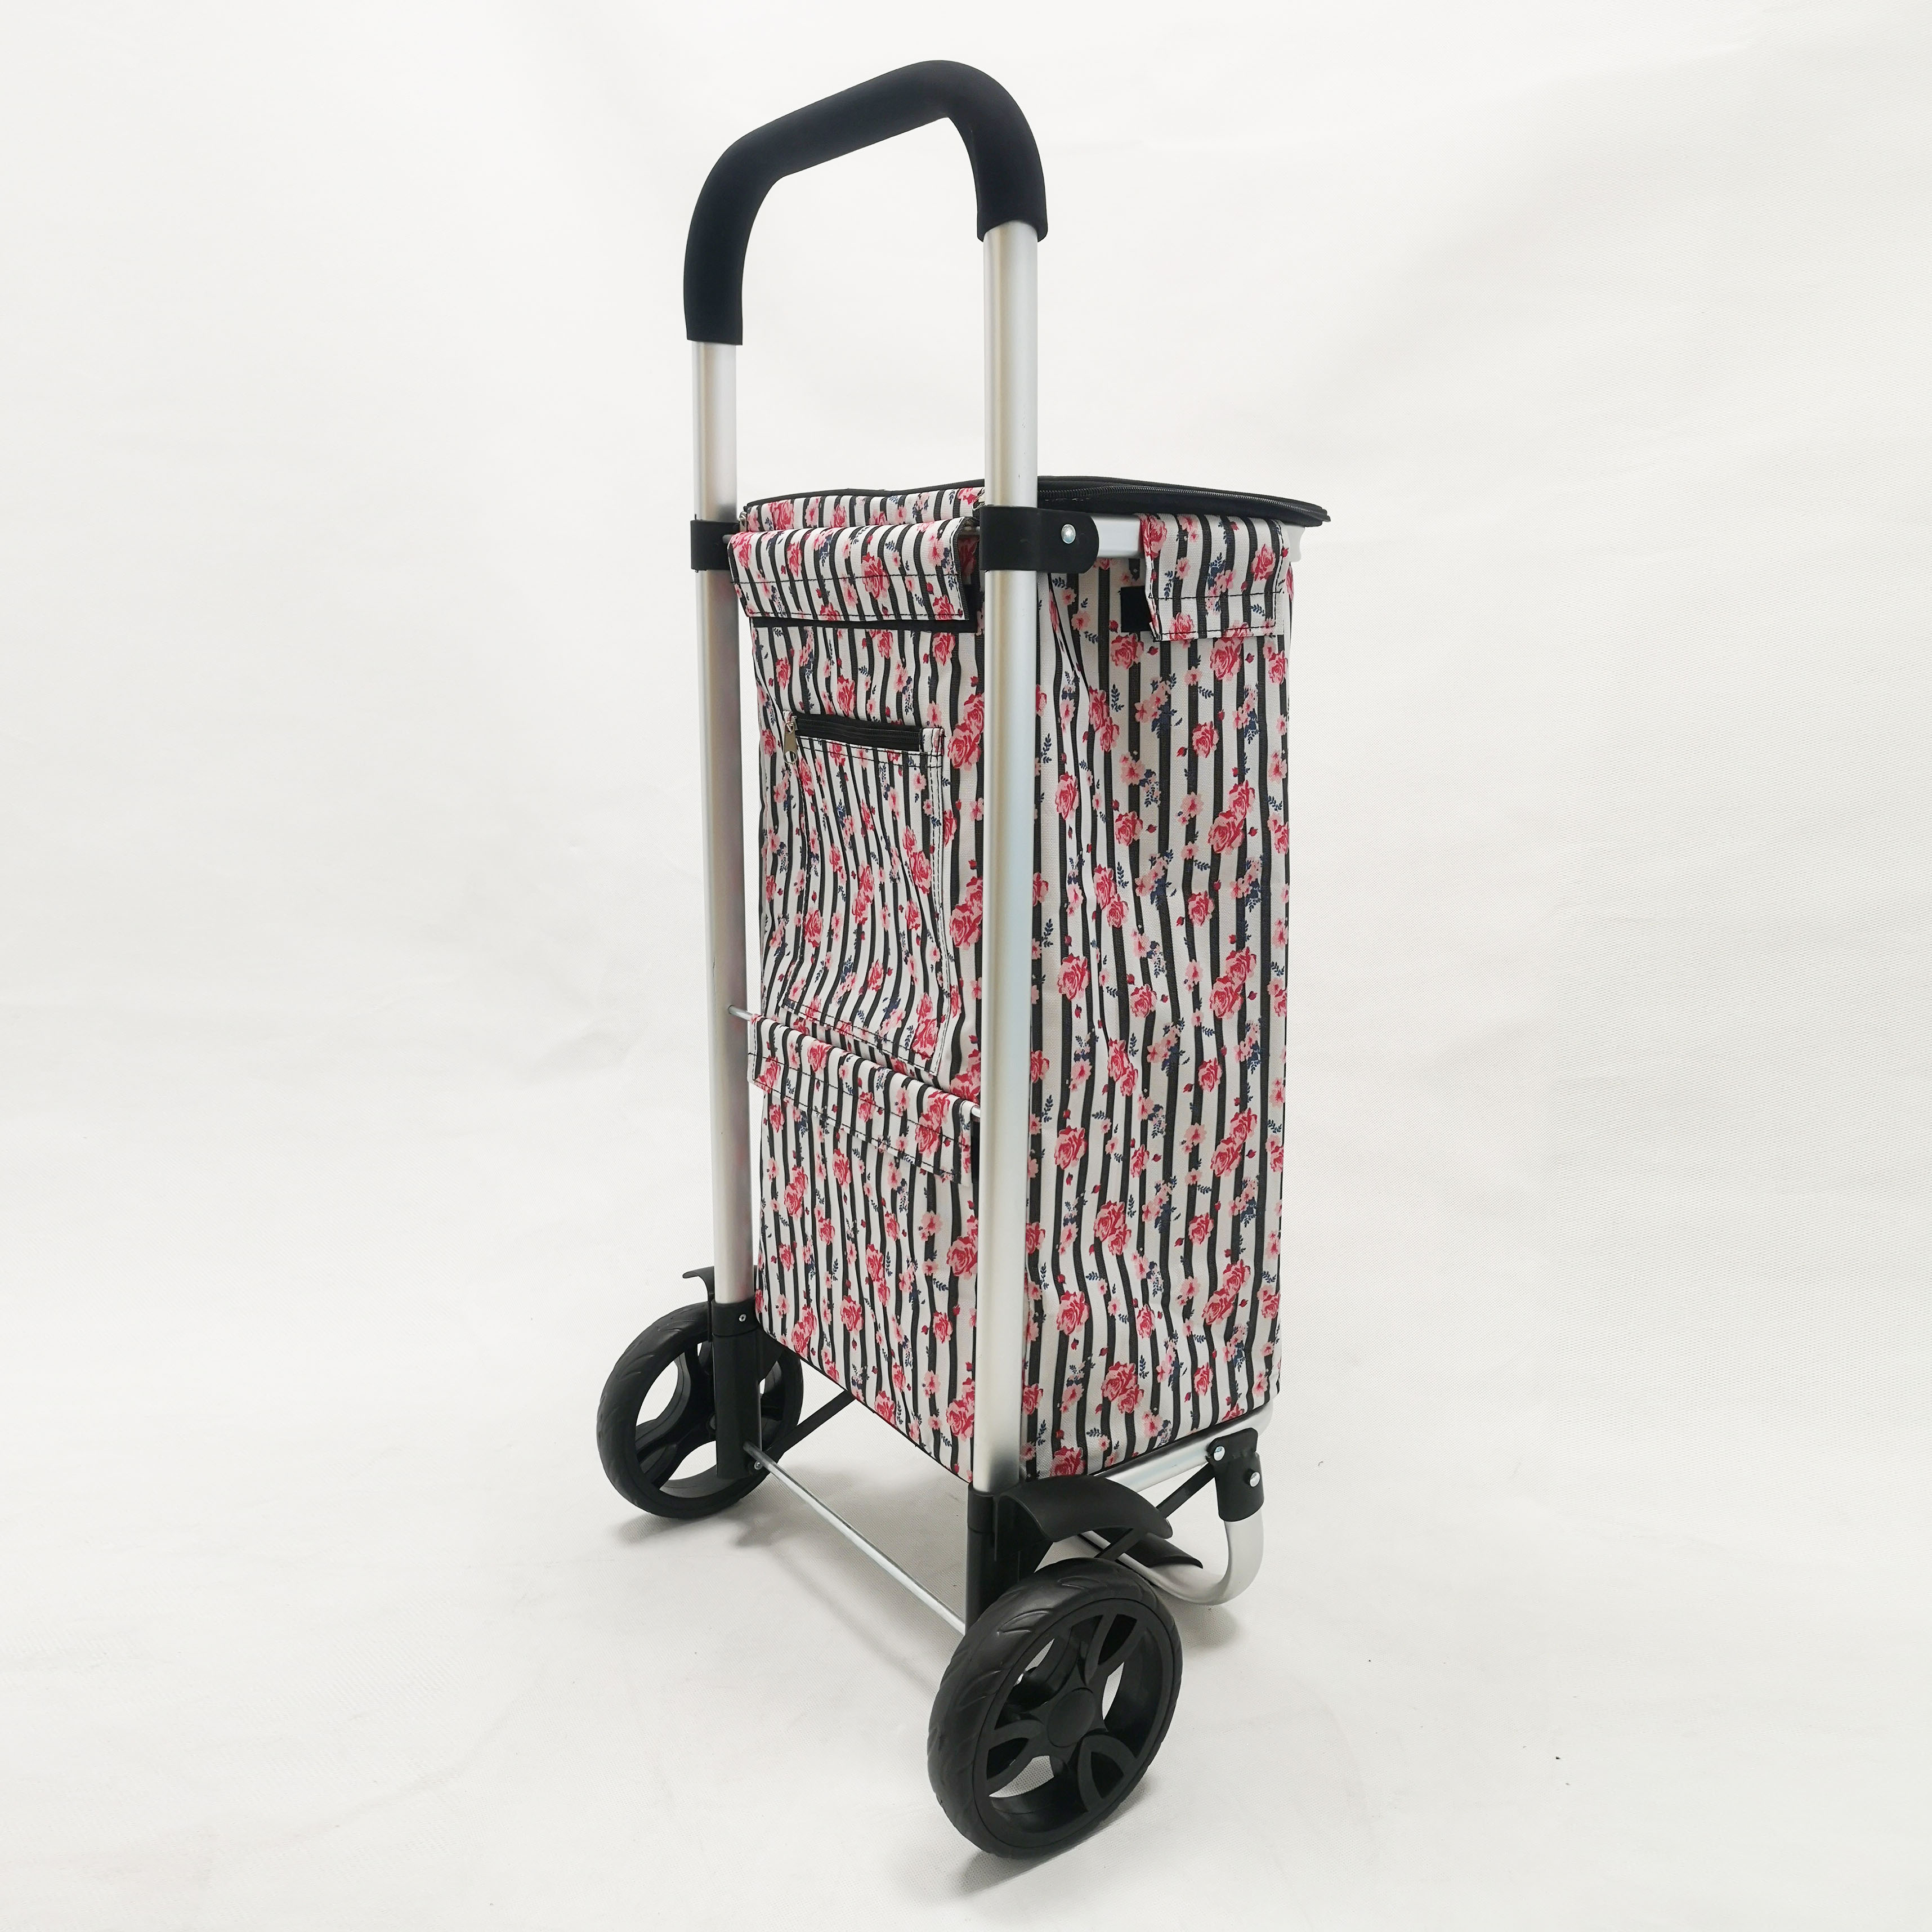 Sunshine Euro Shopping Tote Cart W/Fabric Bag, Foldable, Aluminum Frame Trolley Luggage